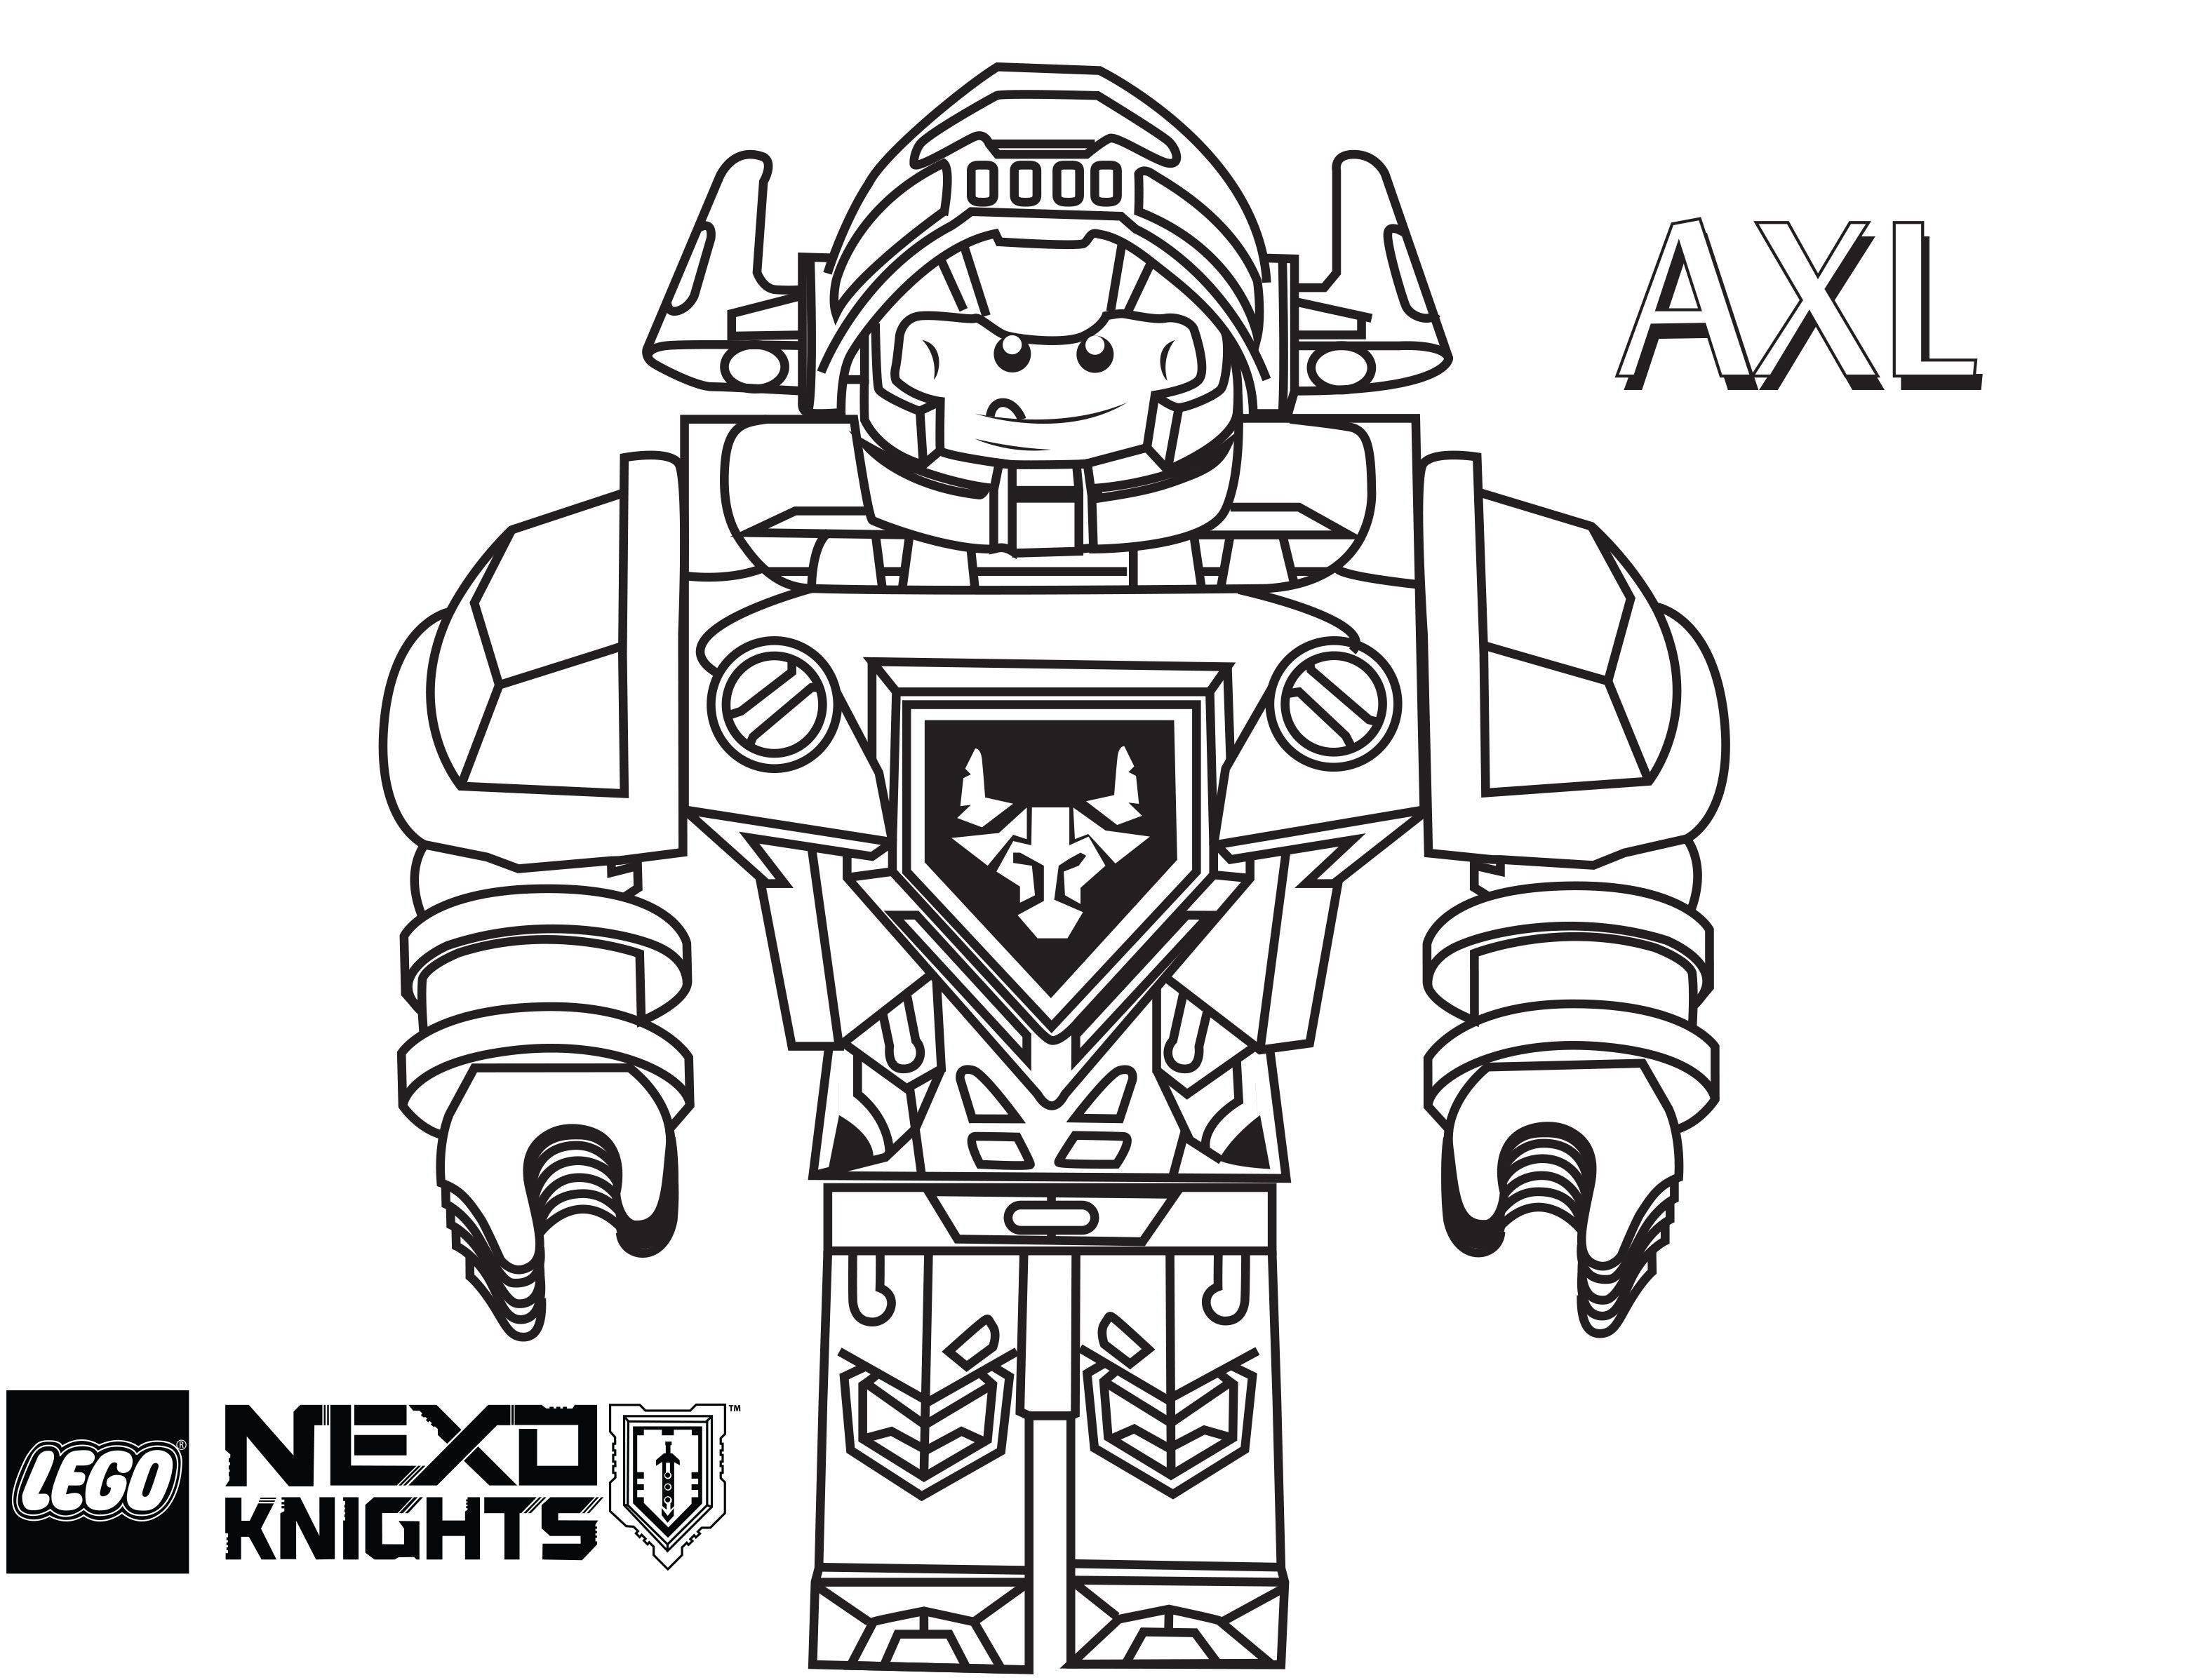 printable knight coloring pages - photo#27